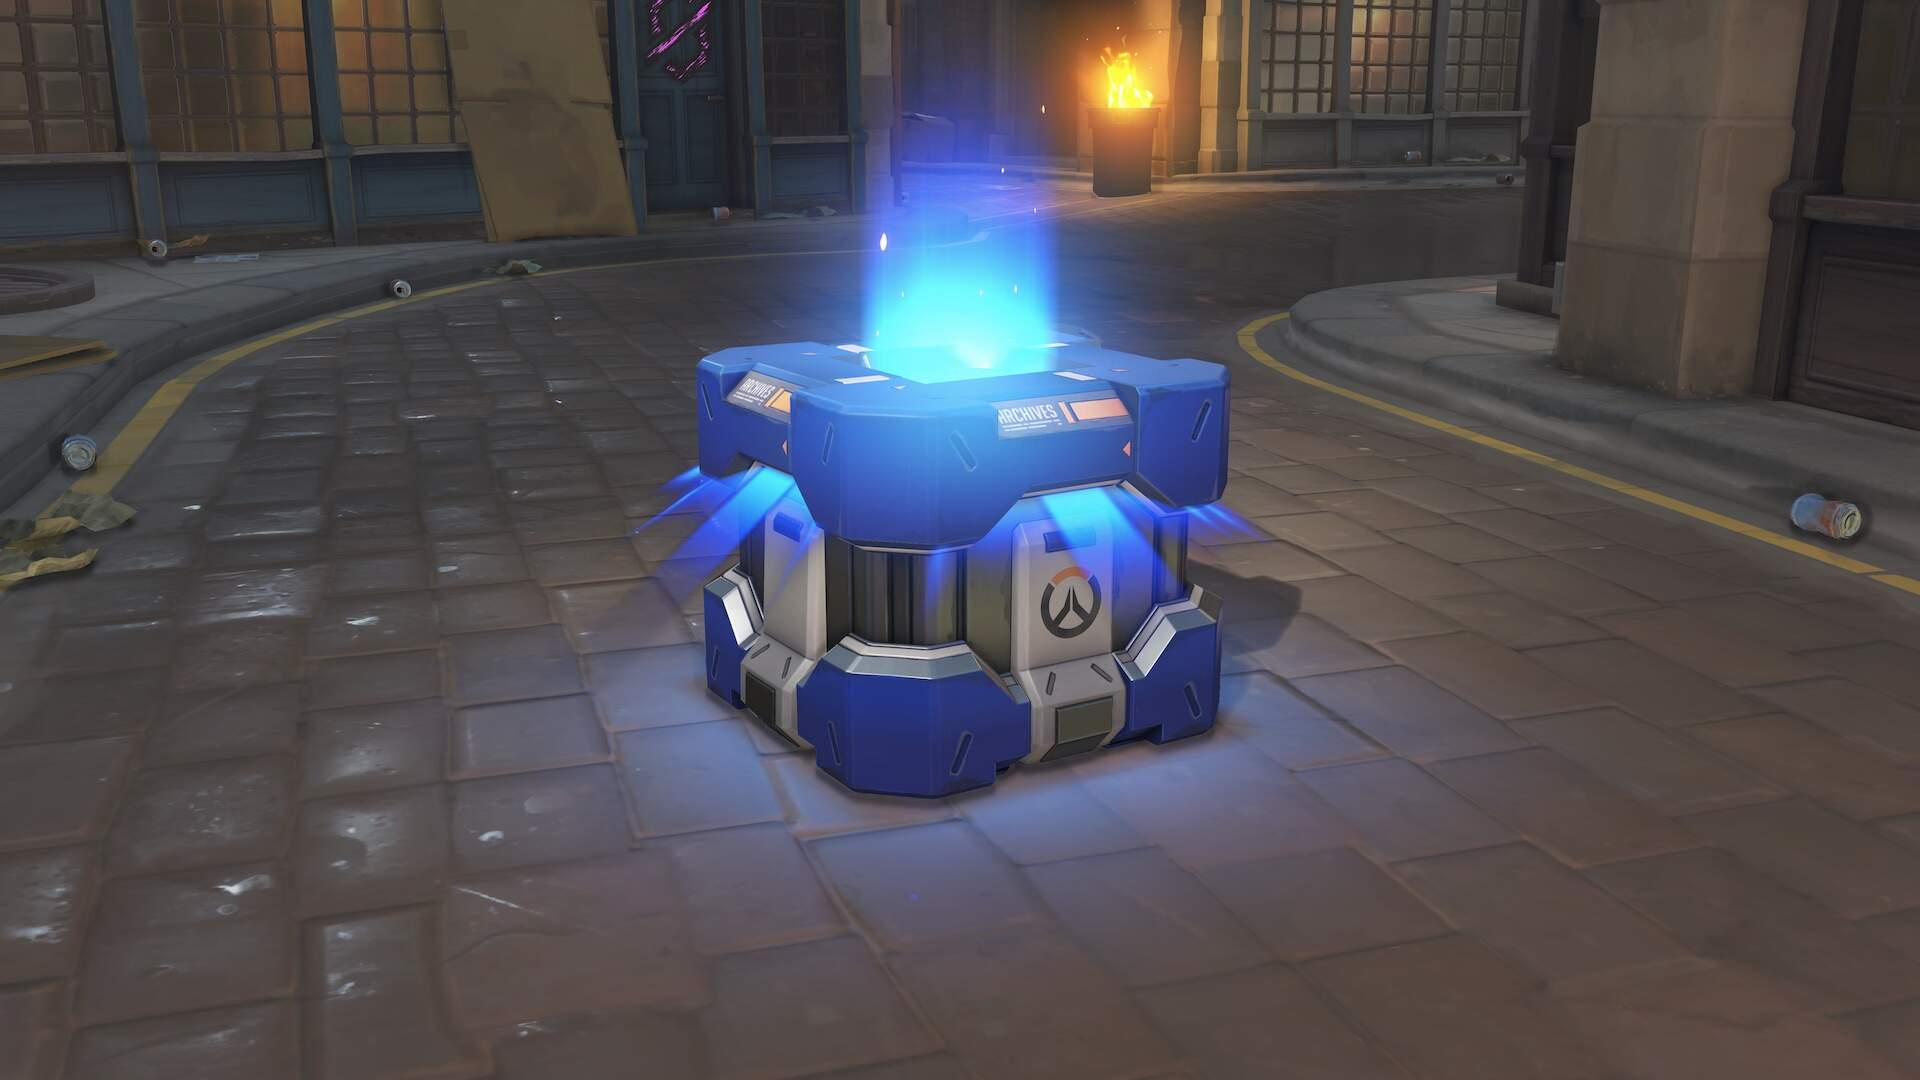 A UK Ministry Just Recommended Heavy Loot Box Regulation. Here's Why This Matters